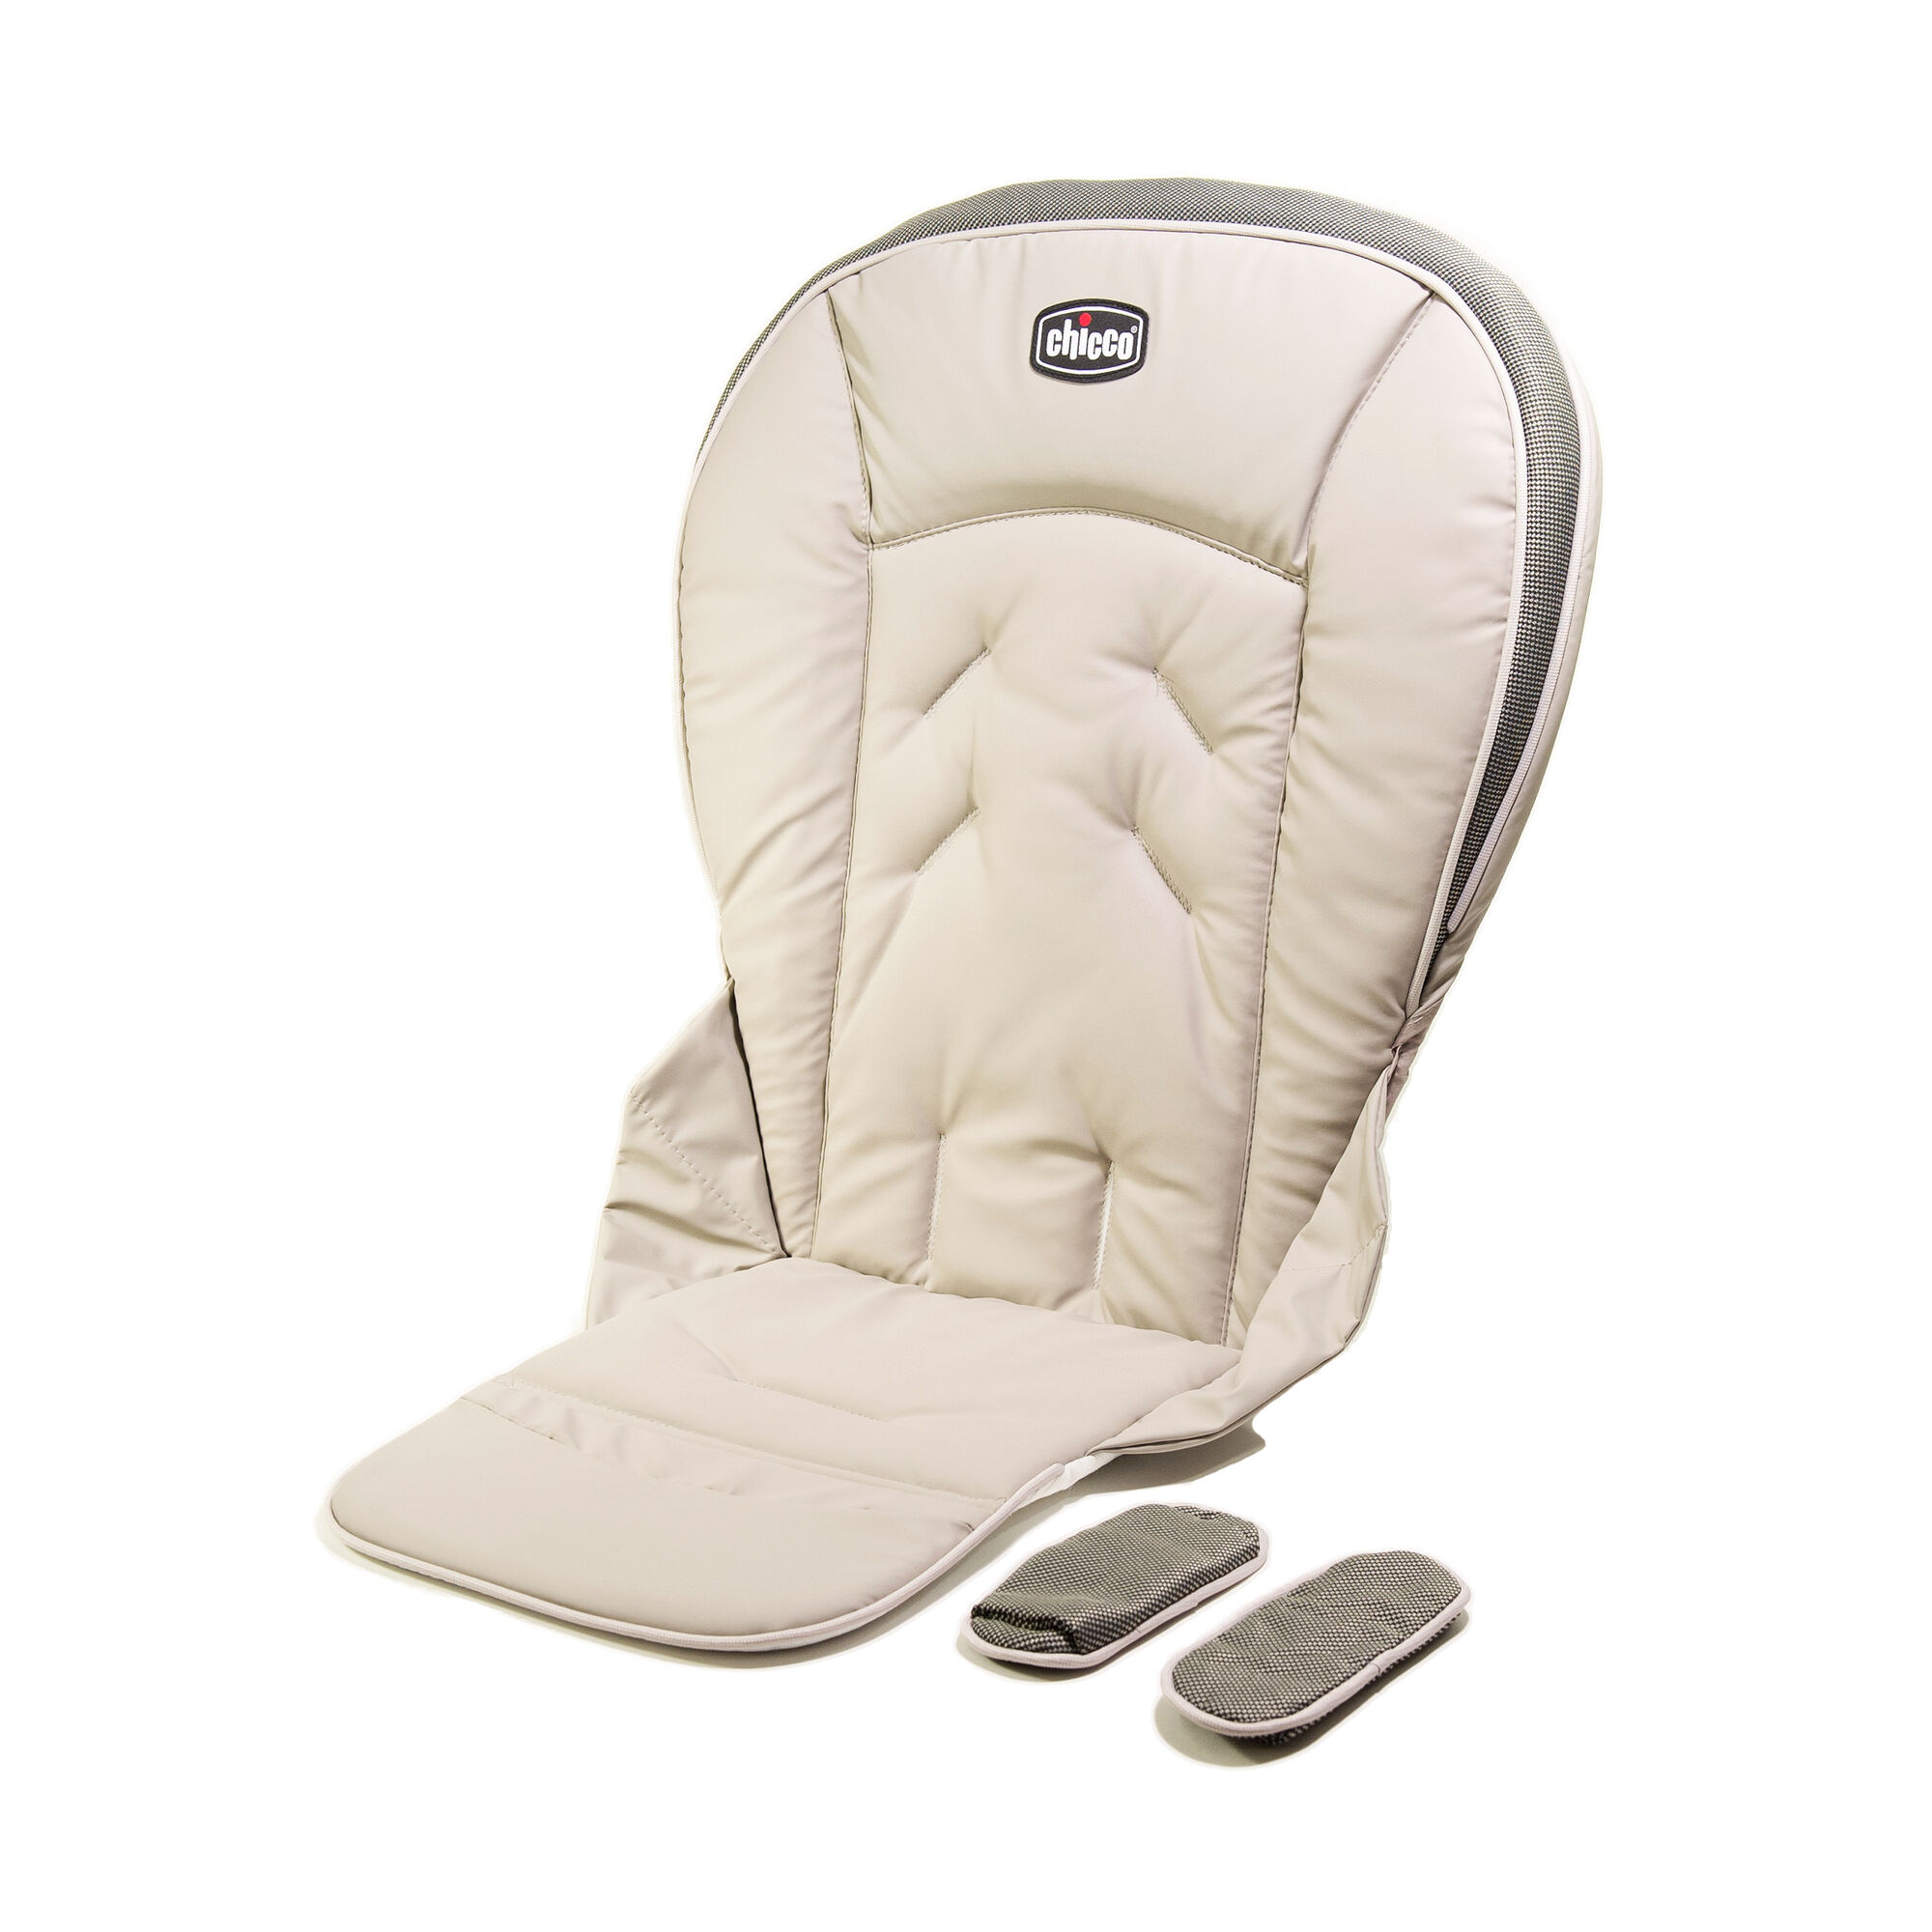 Polly Highchair Seat Cover Chicco